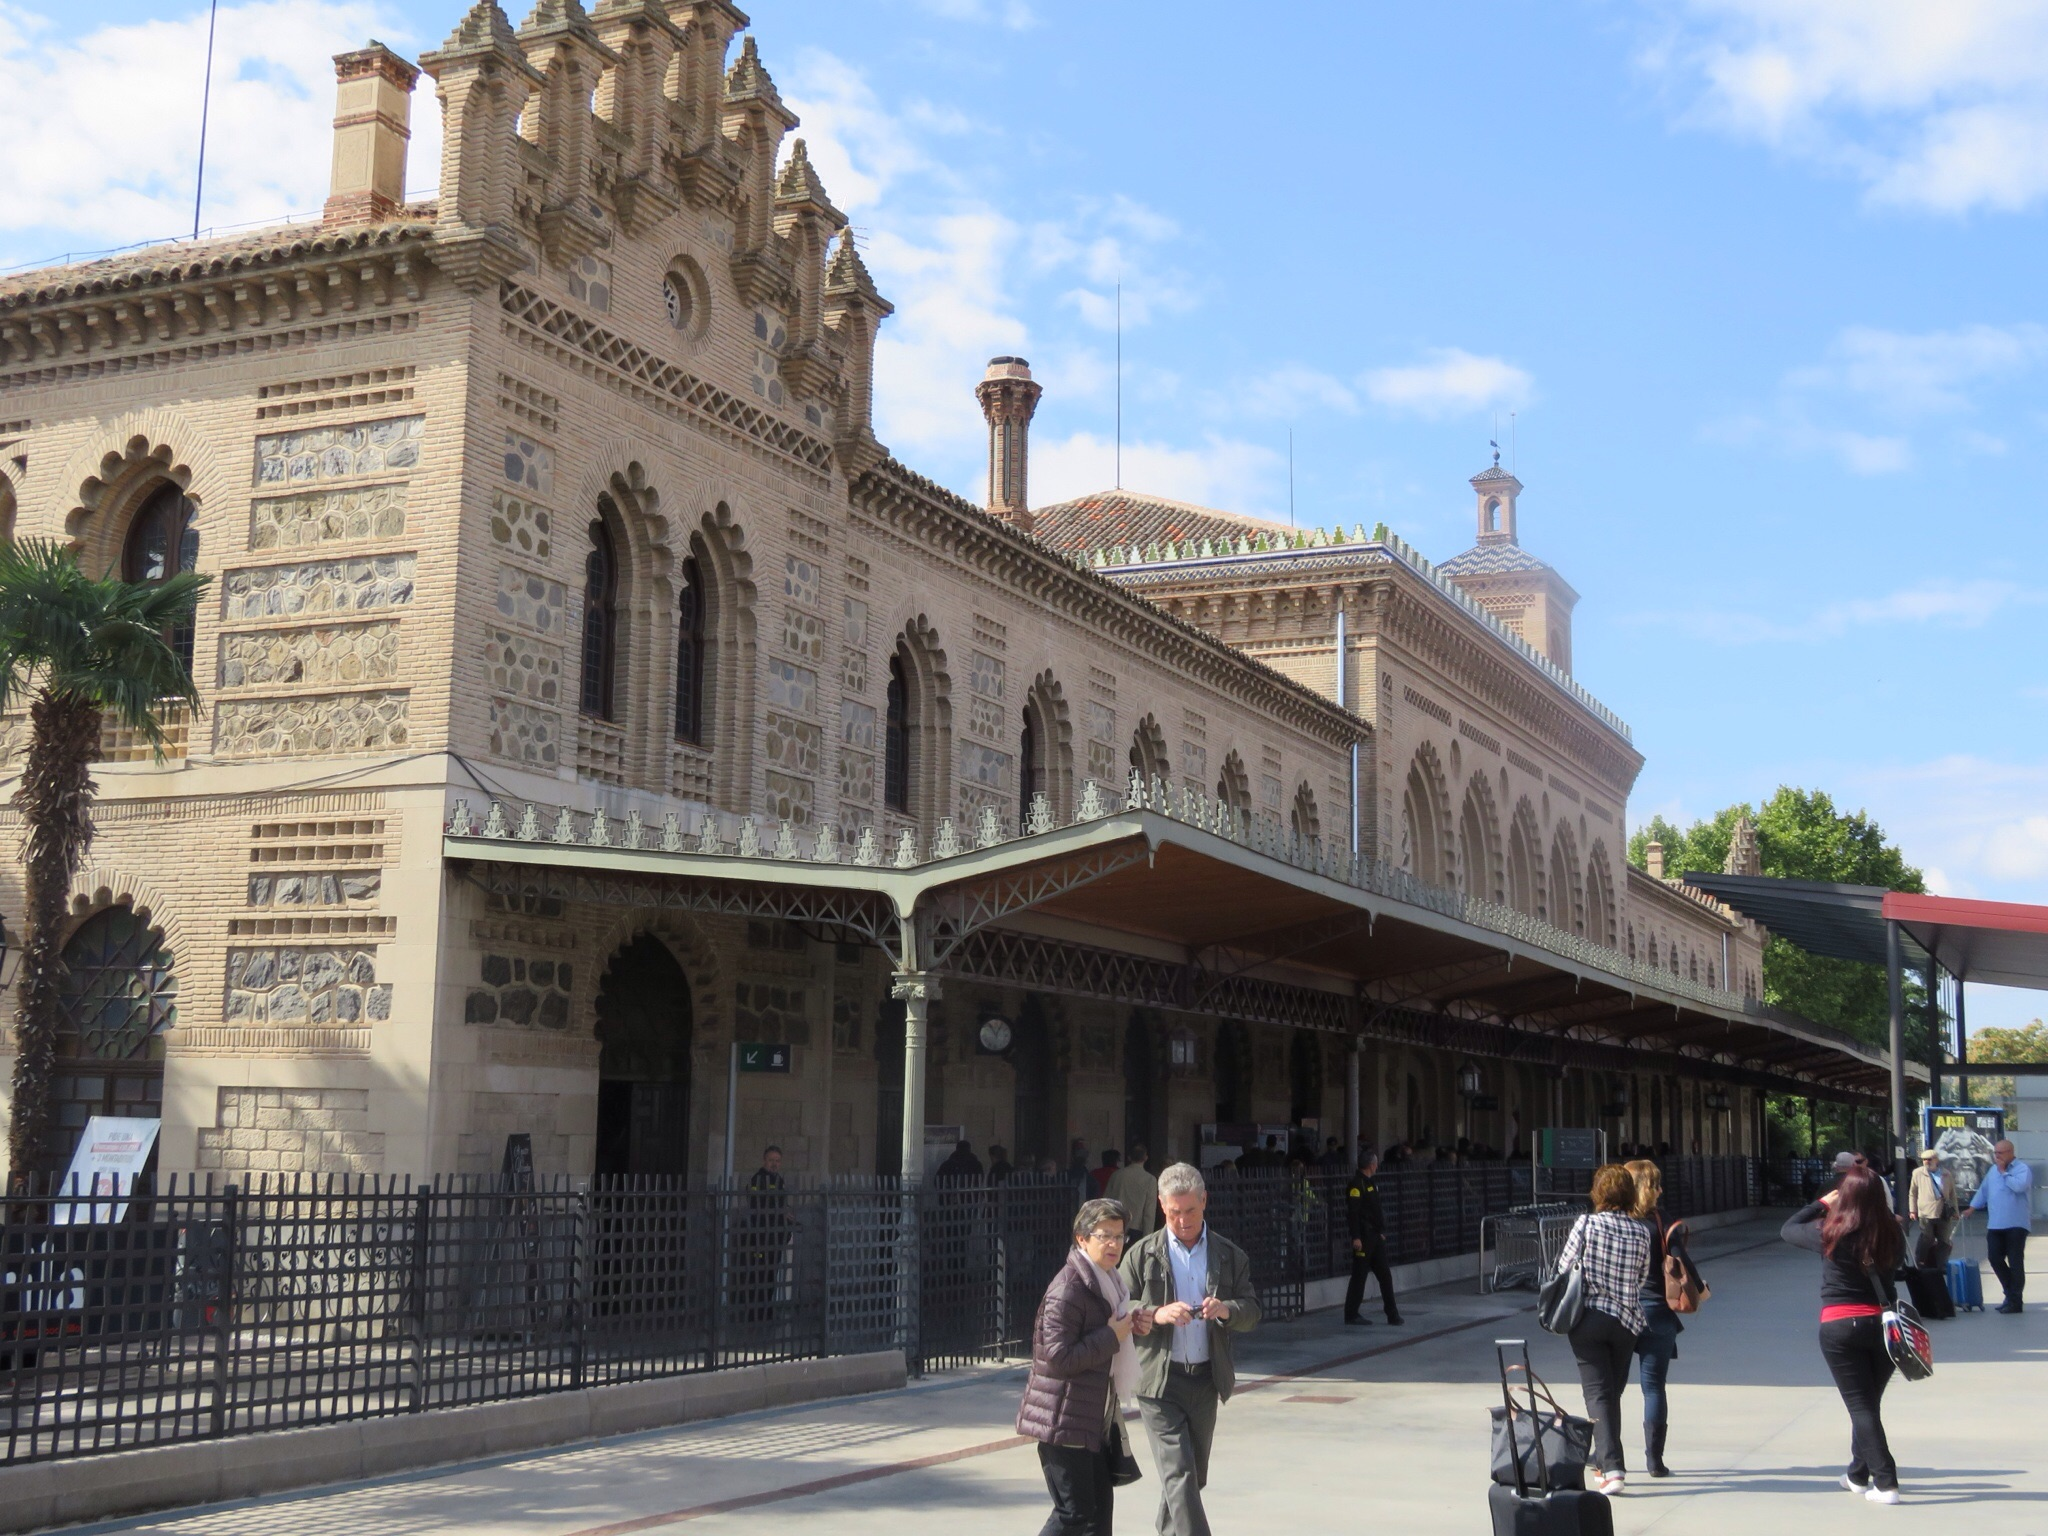 Toledo train station - Moorish influences